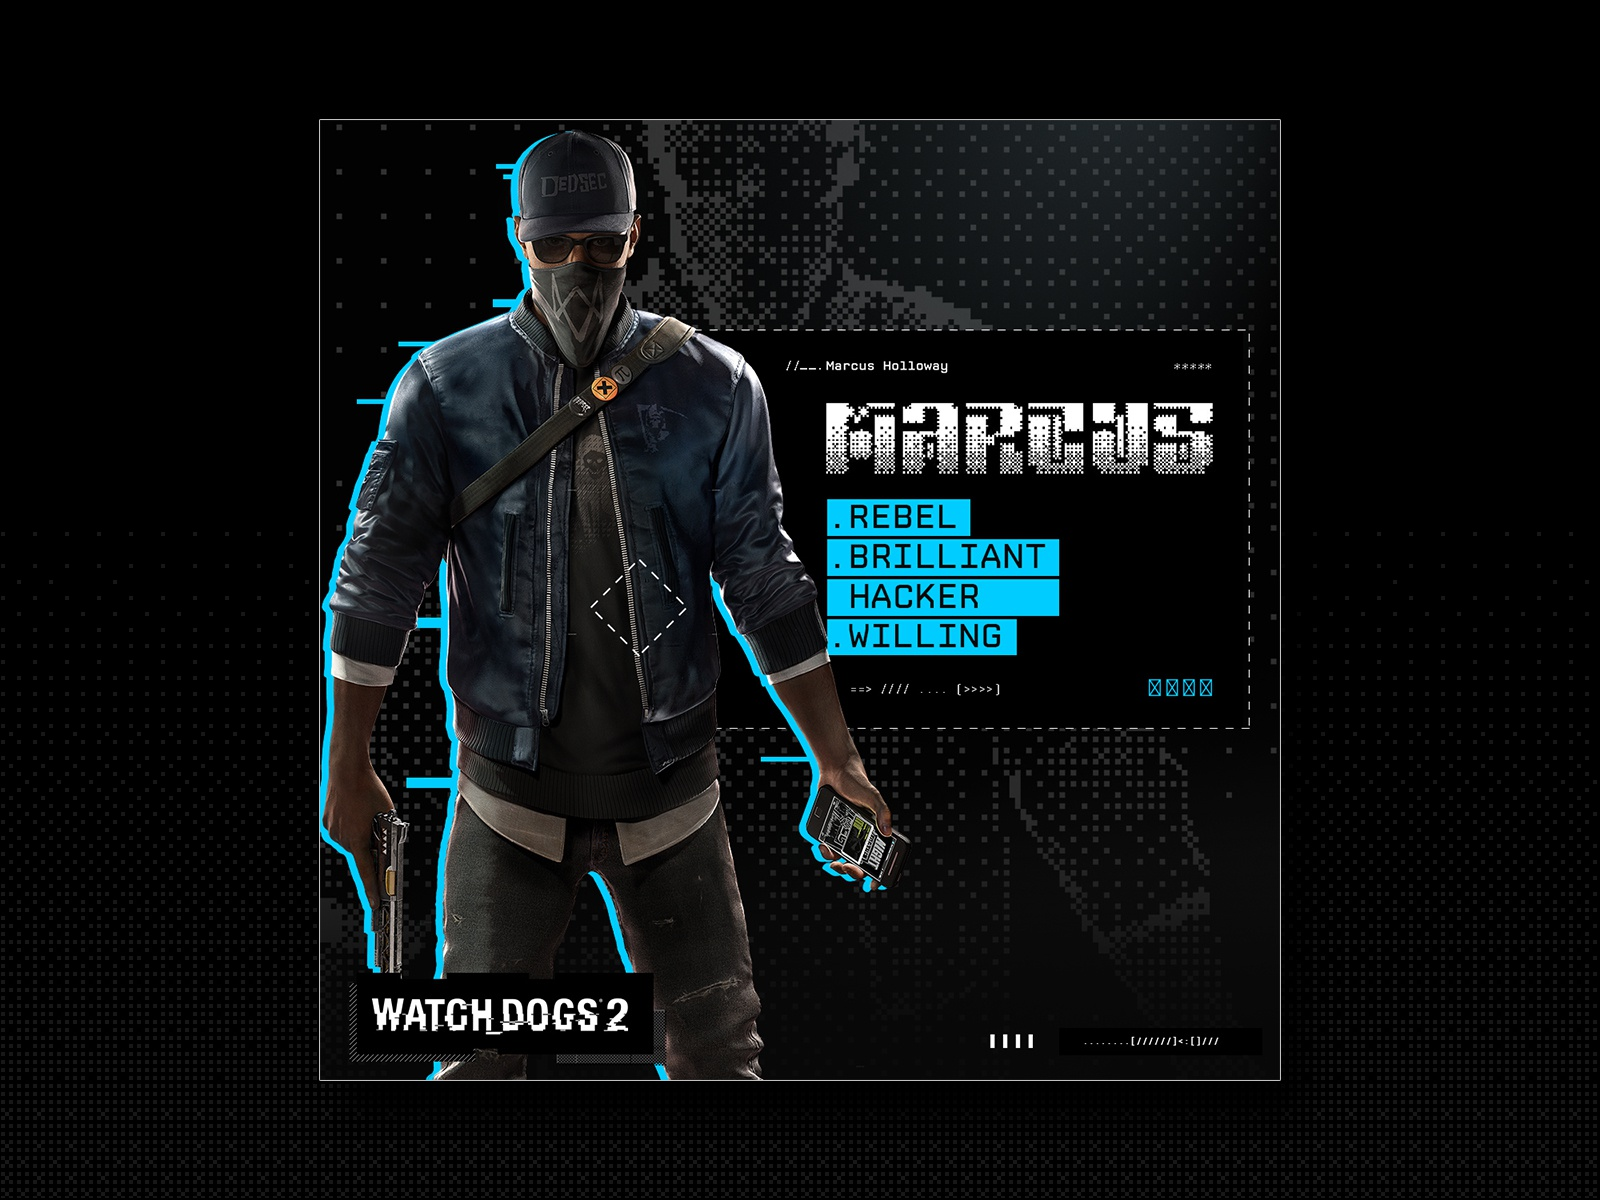 Ubisoft | Watch Dogs 2 | Social Media